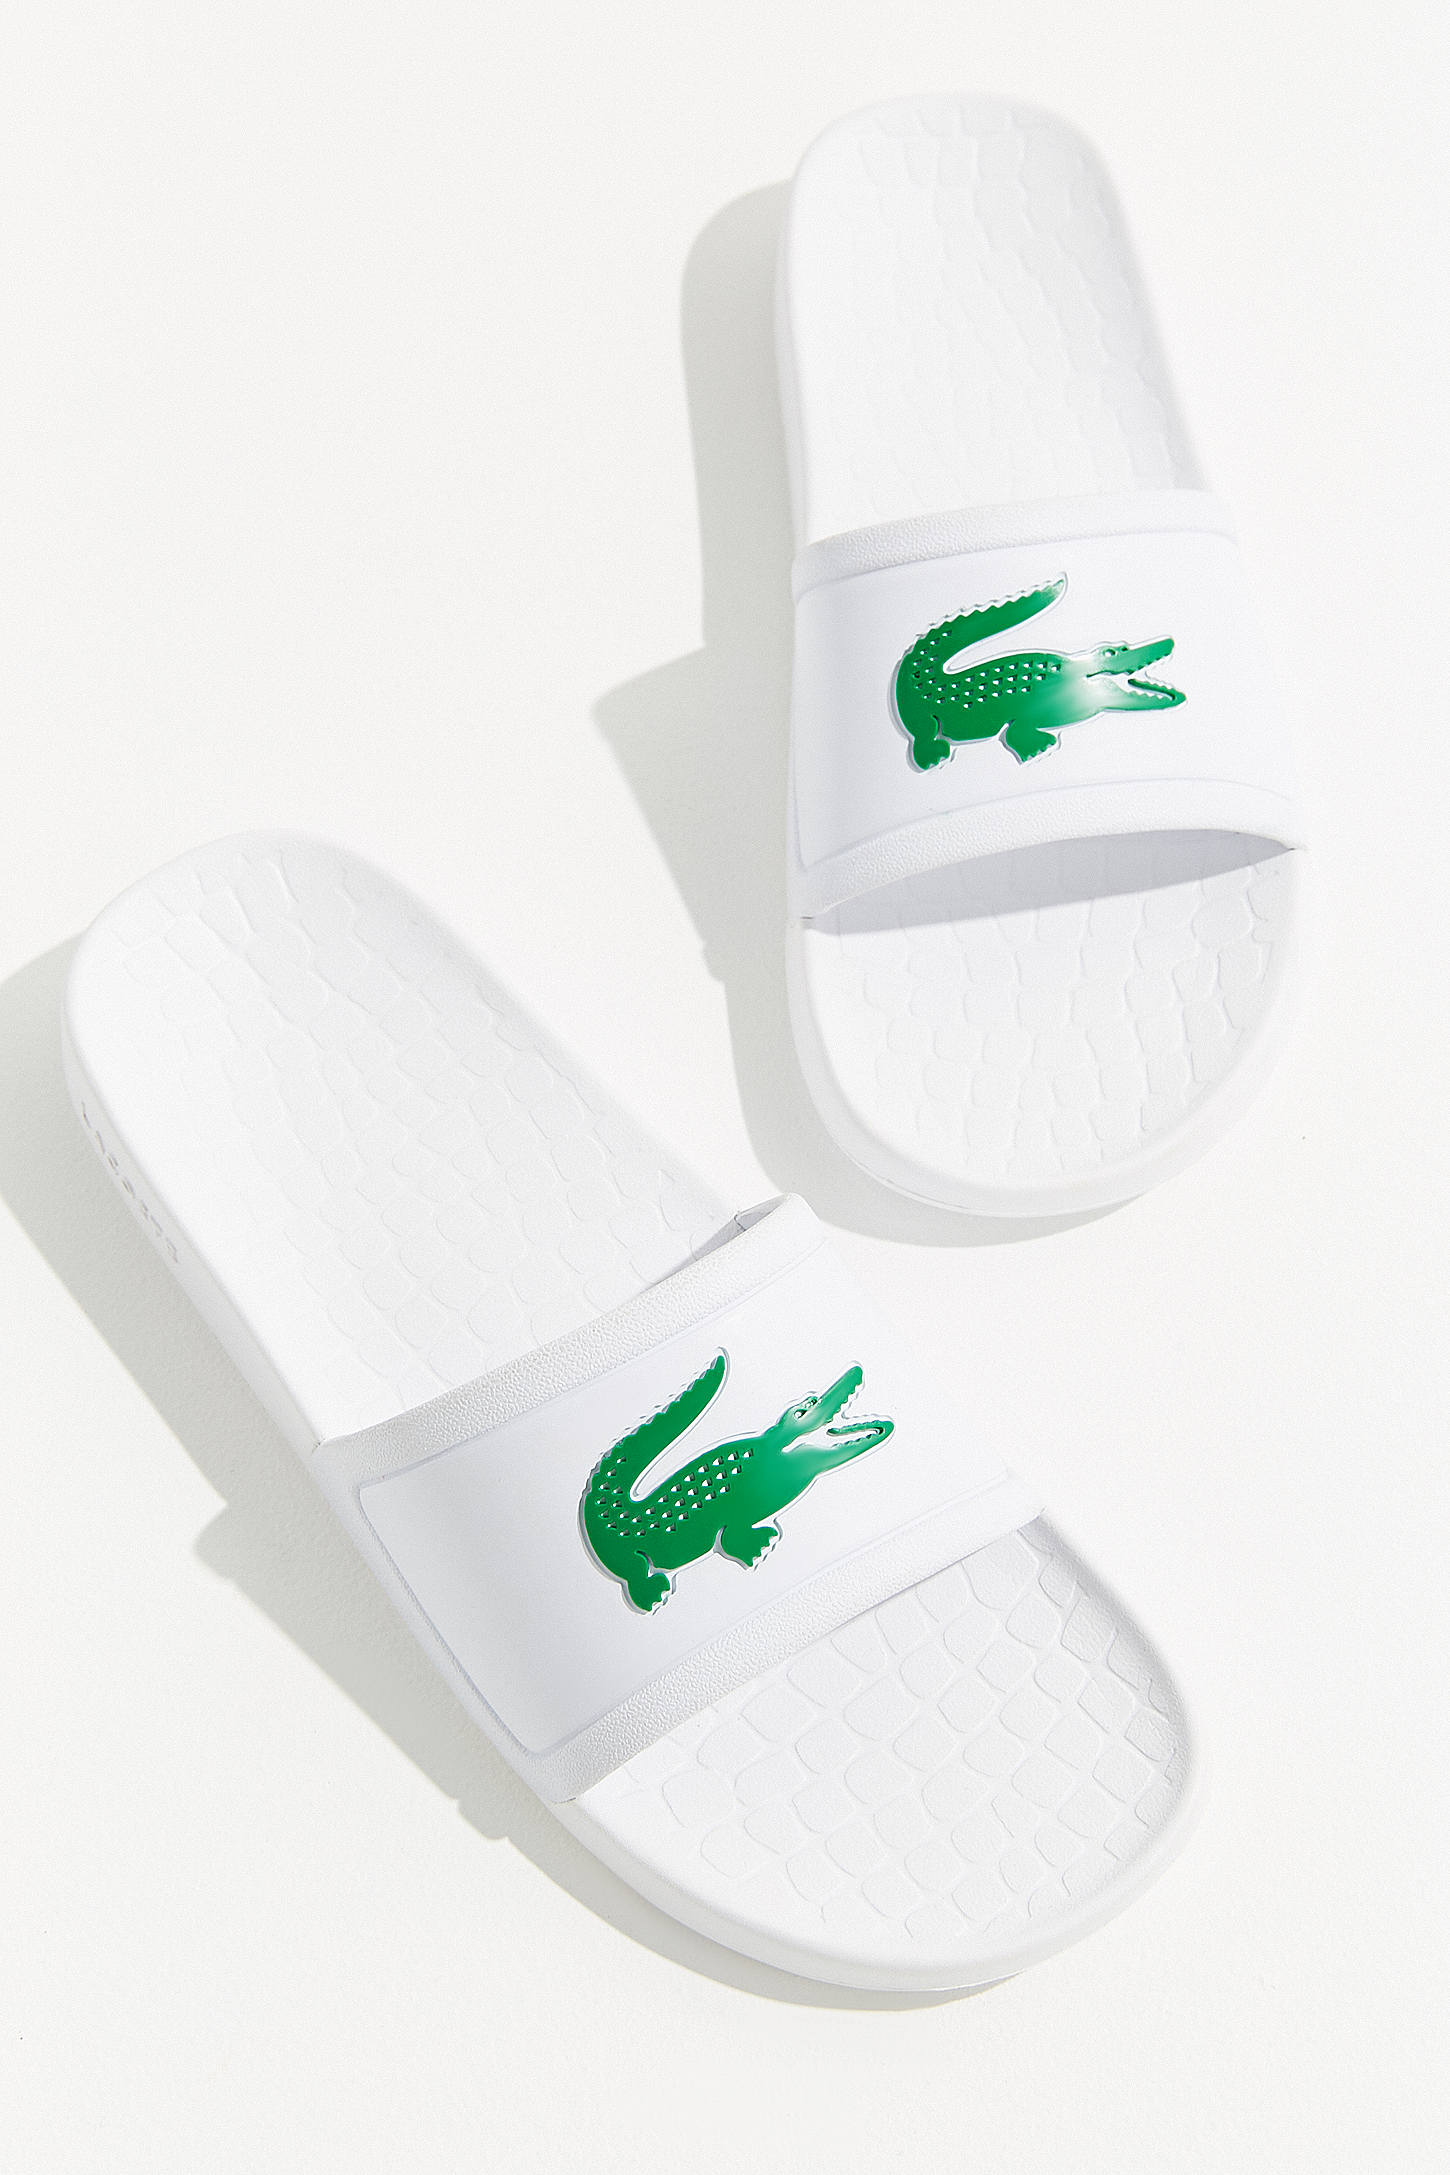 Lacoste Slide Sandals Pool Green White Crocodile